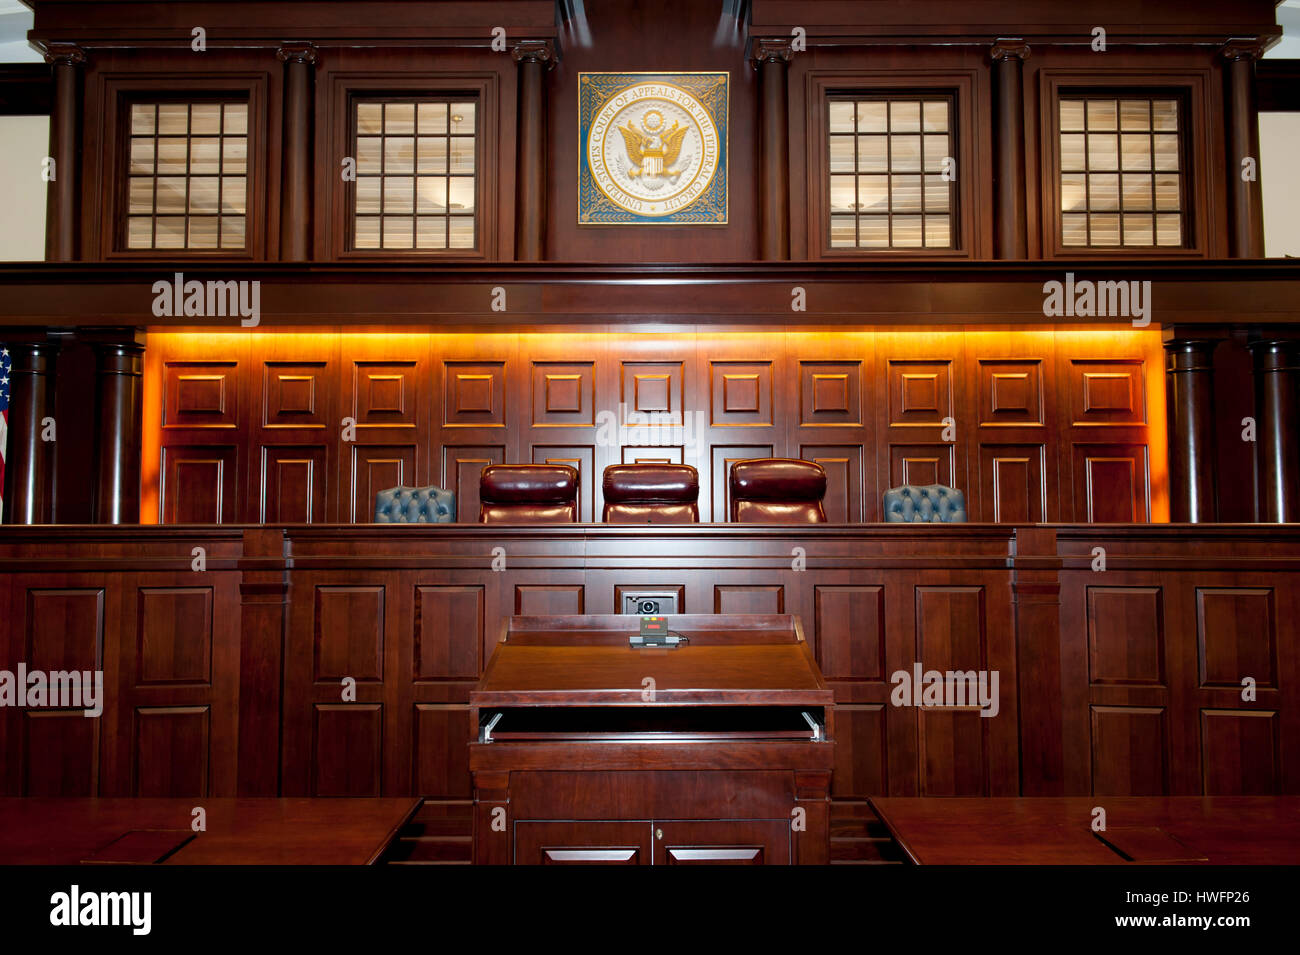 Interior of a United States Federal Appeals Courtroom in Washington DC - Stock Image